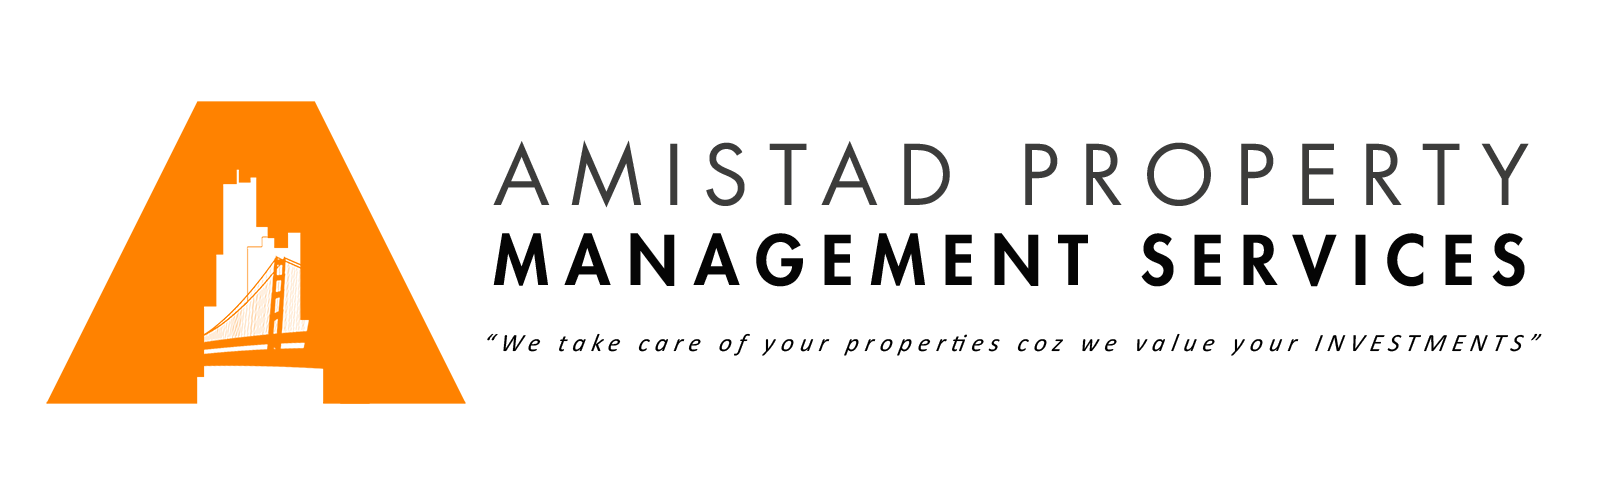 Amistad Property Management